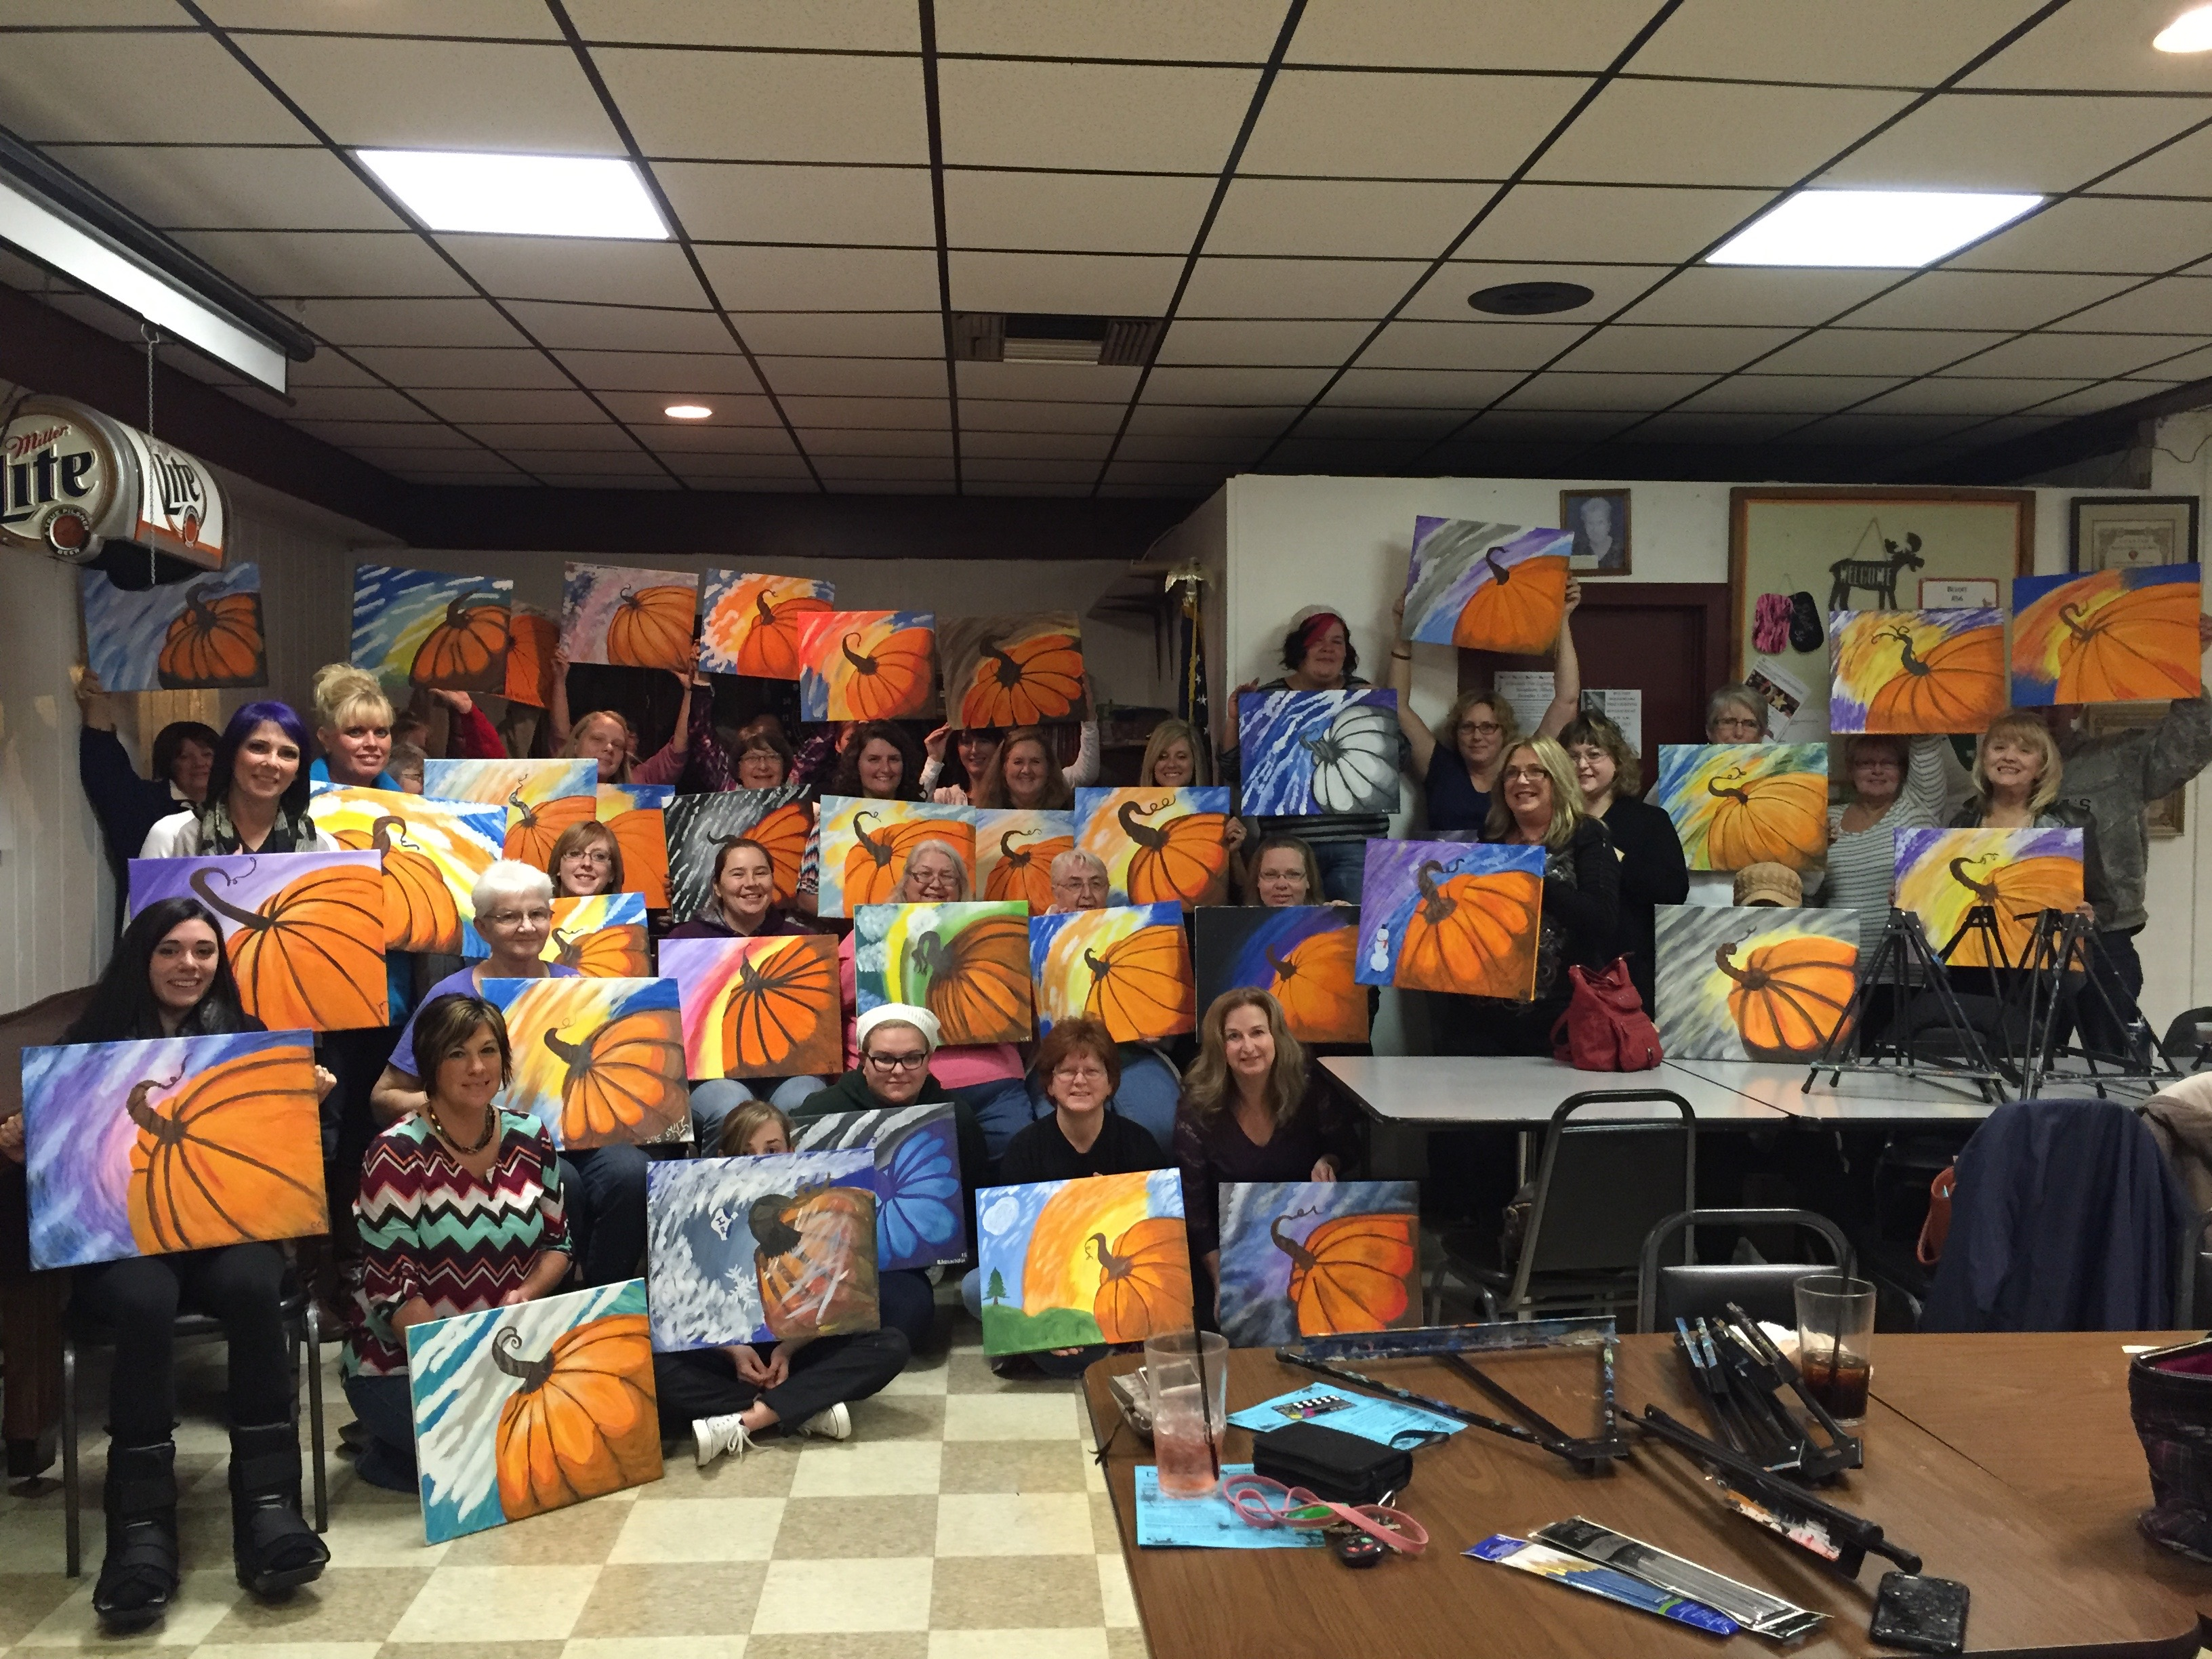 The ladies at the Beloit Moose Lodge painted Pumpkins for Fall! 11/14/15